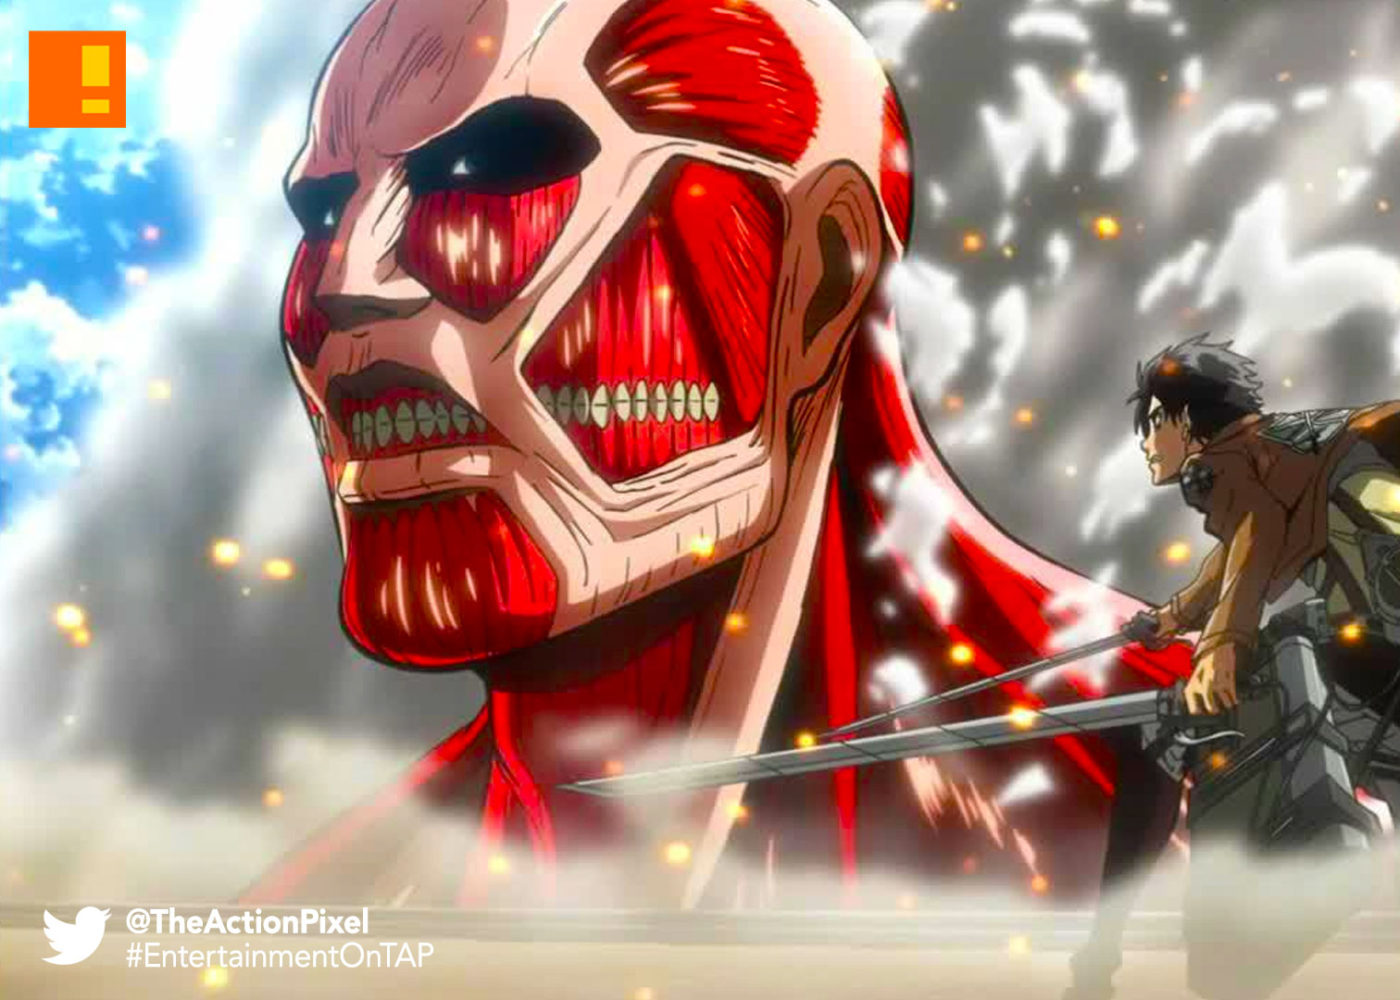 attack on titan, Masashi Koizuka, Tetsuro Araki, manga , anime, Kodansha Comics, the action pixel, entertainment on tap,